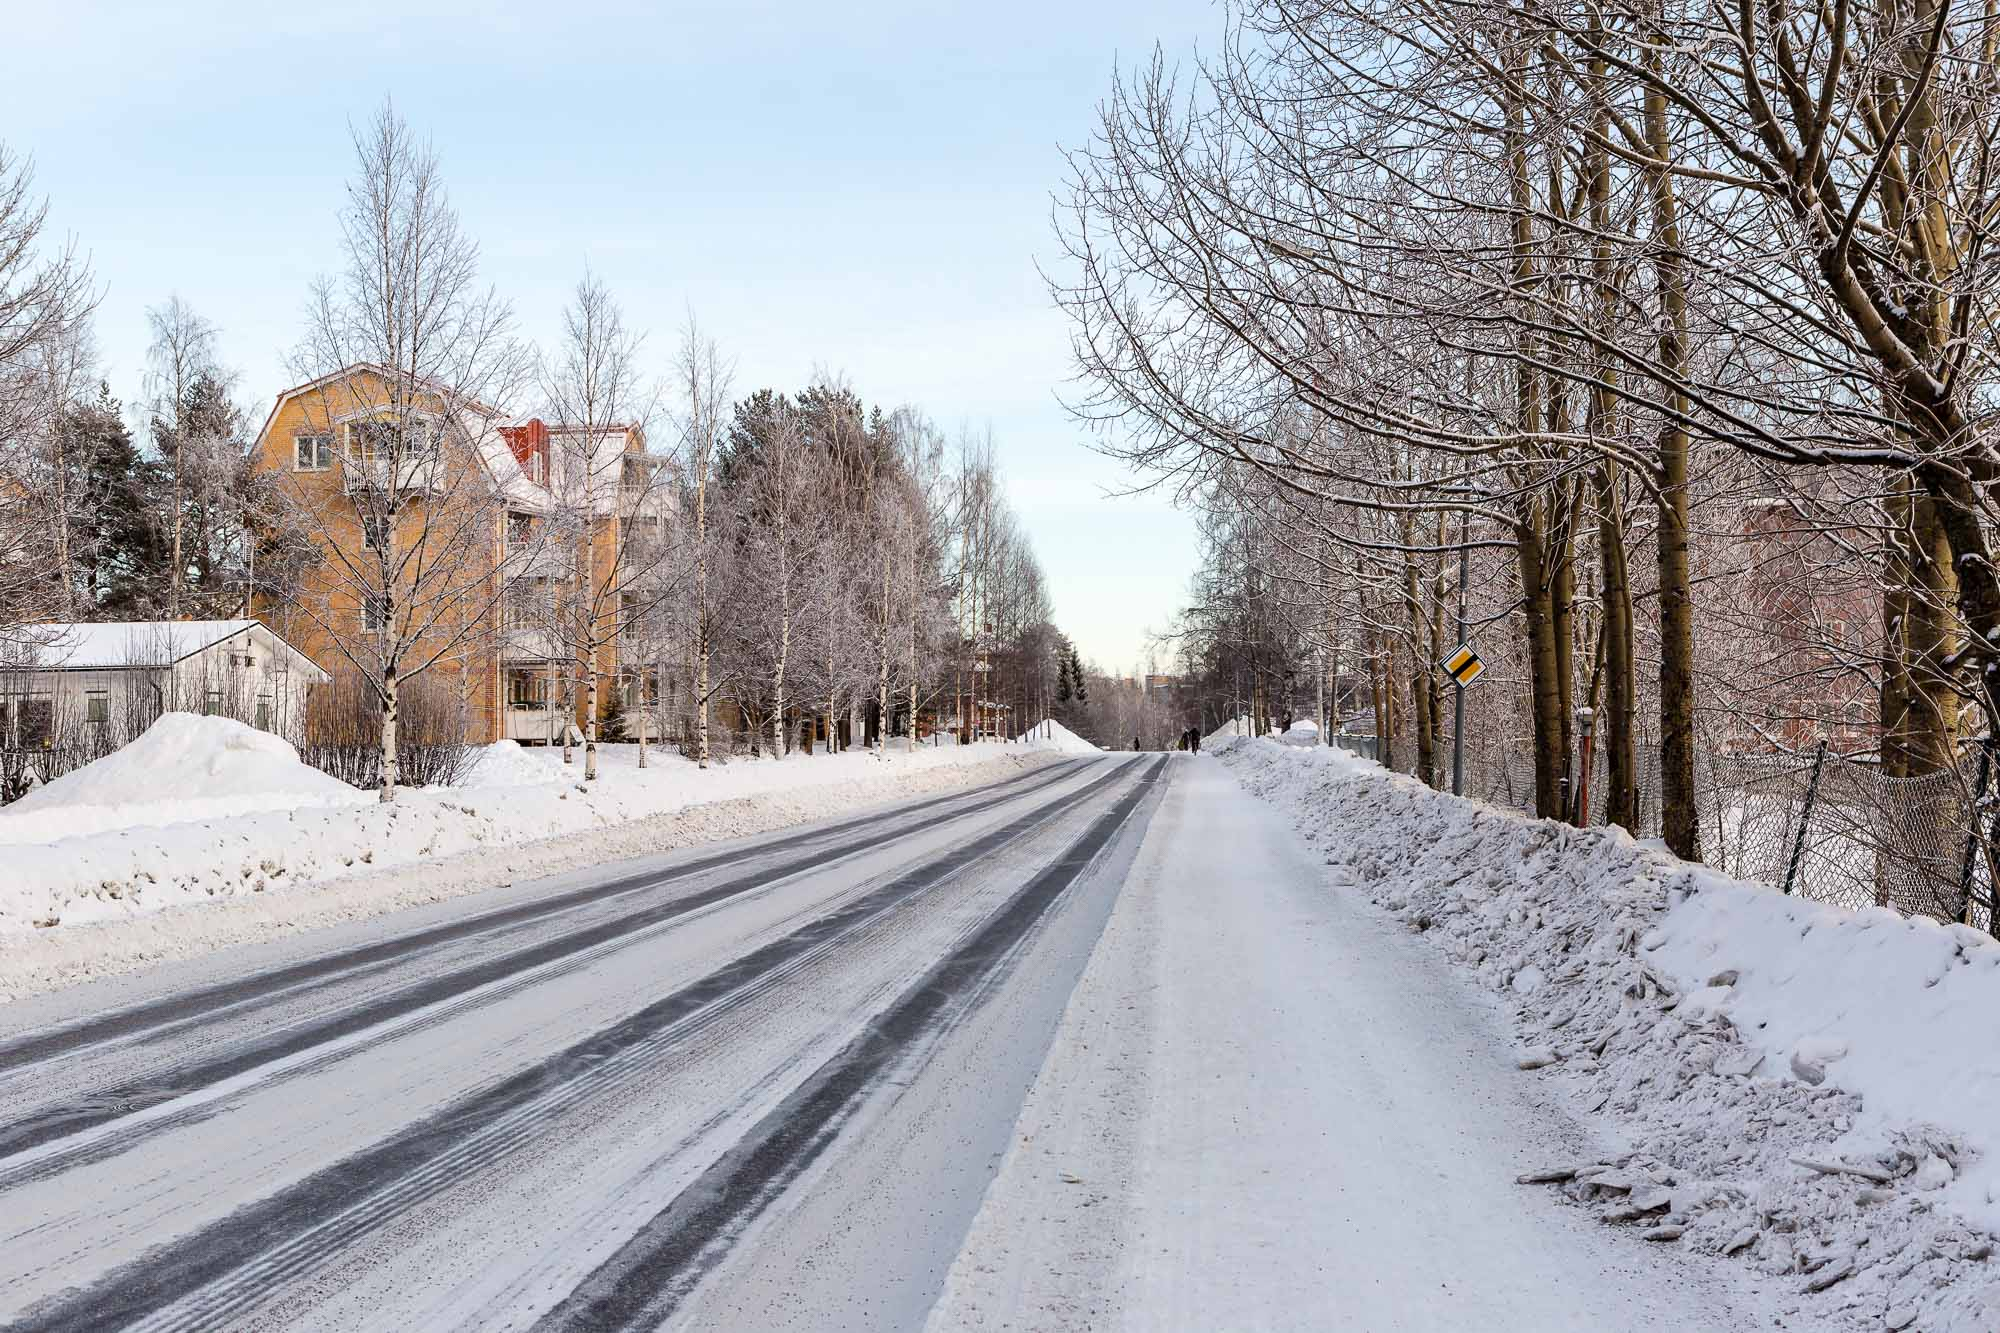 Street, Luleå, Sweden January 2017, Ben Lee Photography